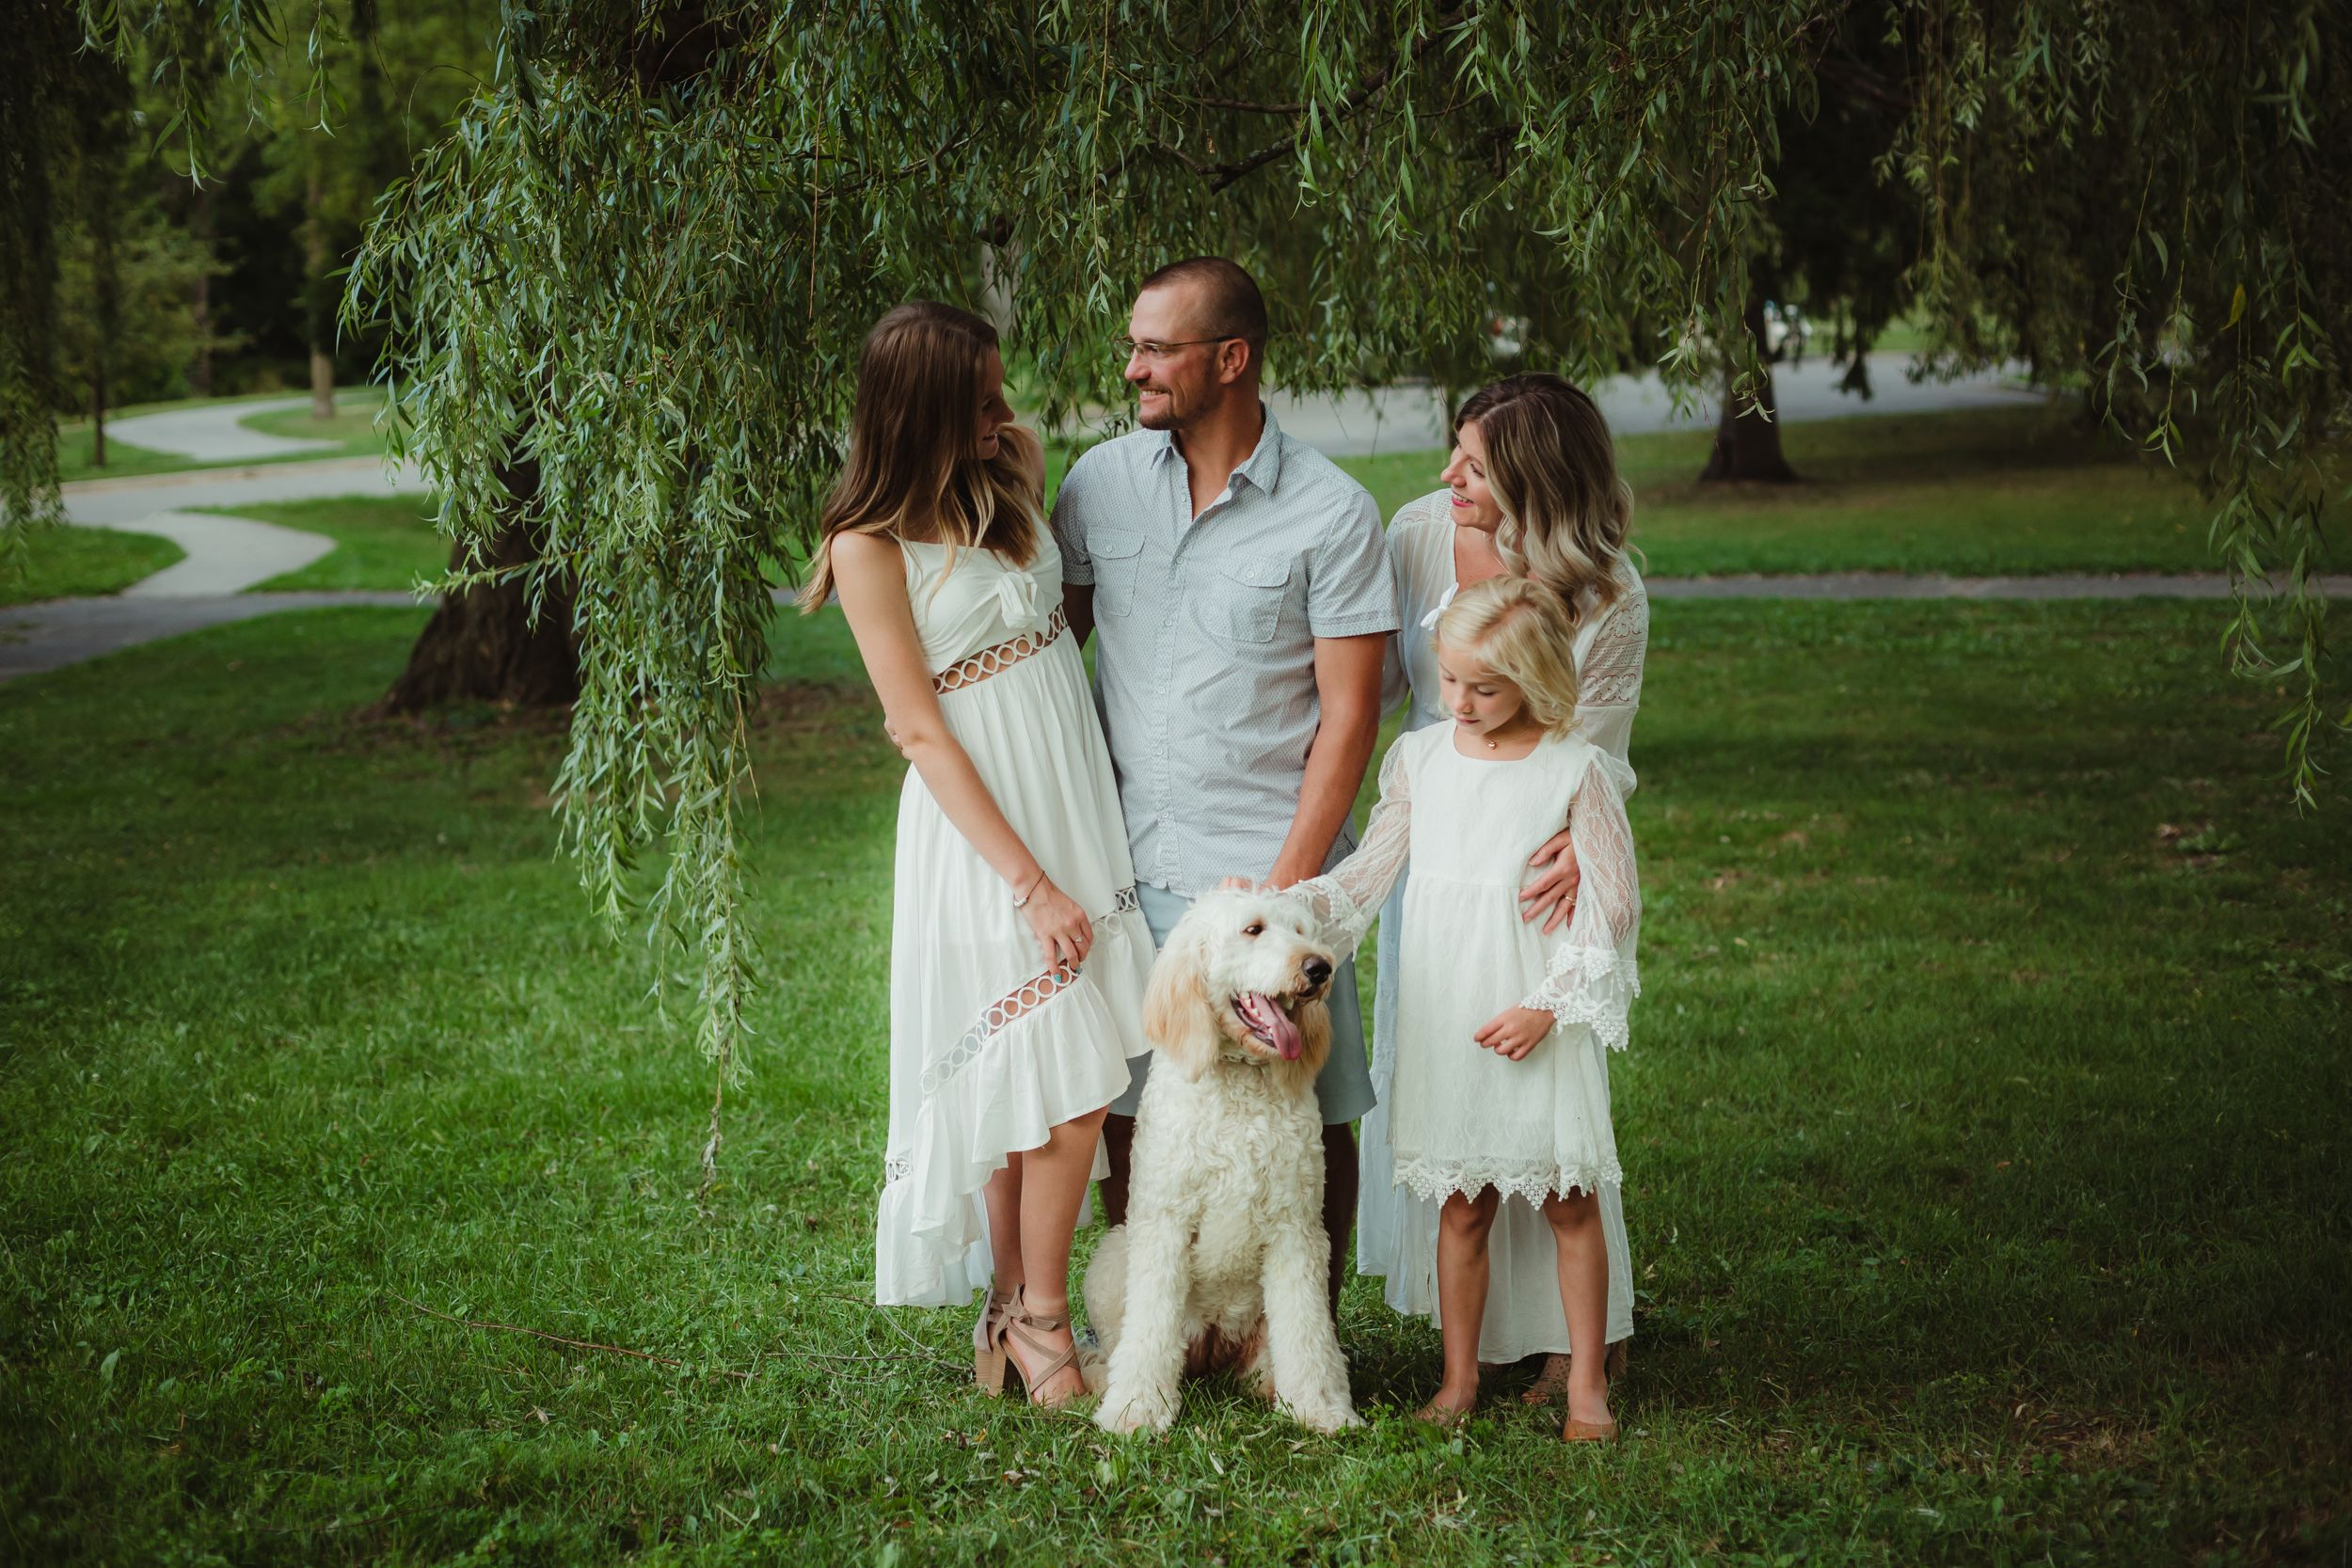 Mom, dad, two daughters, and white dog standing under a willow tree looking at each other.